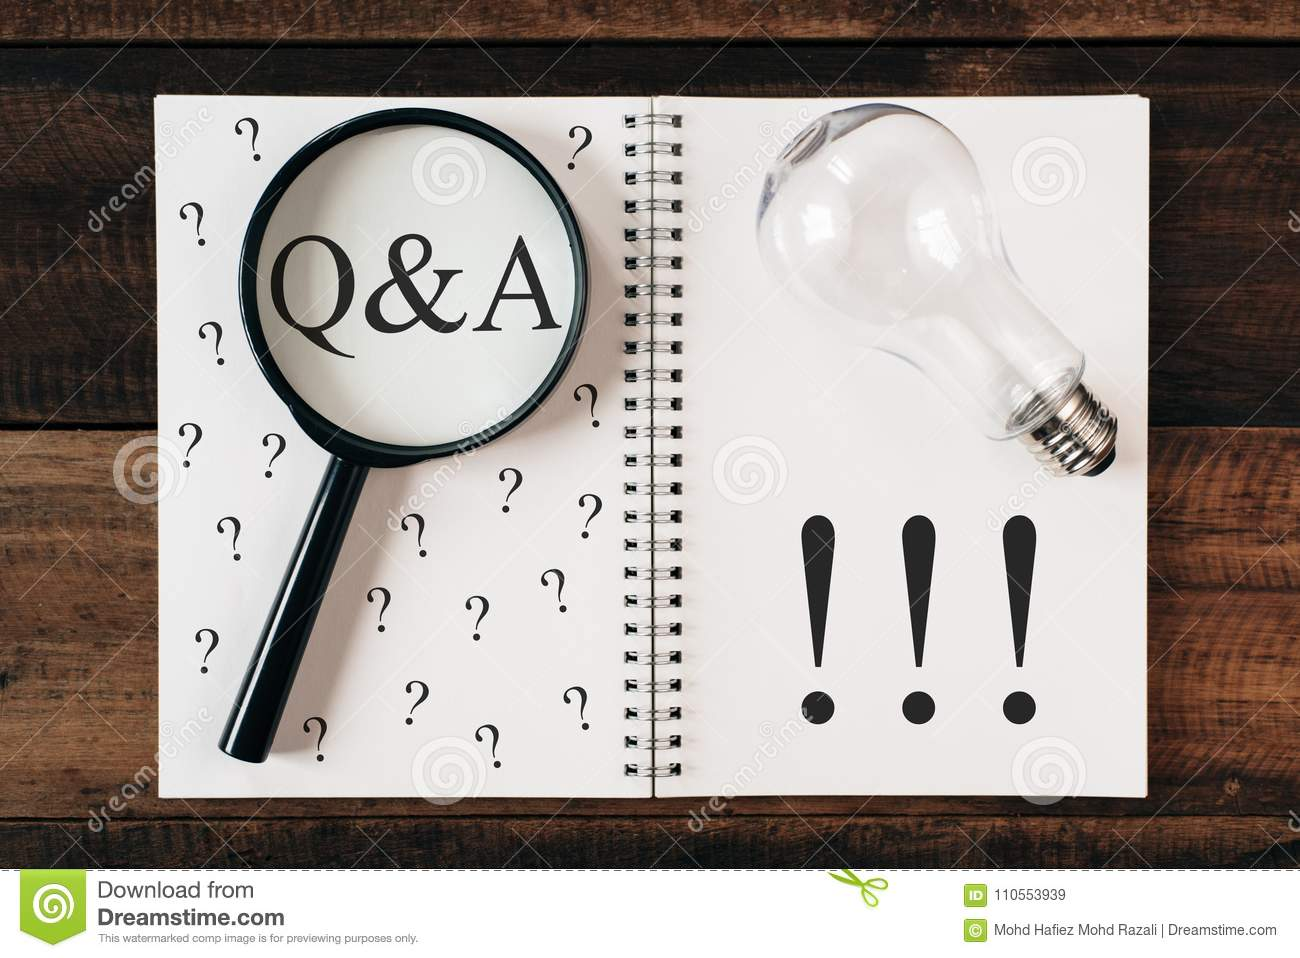 Questions and answers concept Q&A